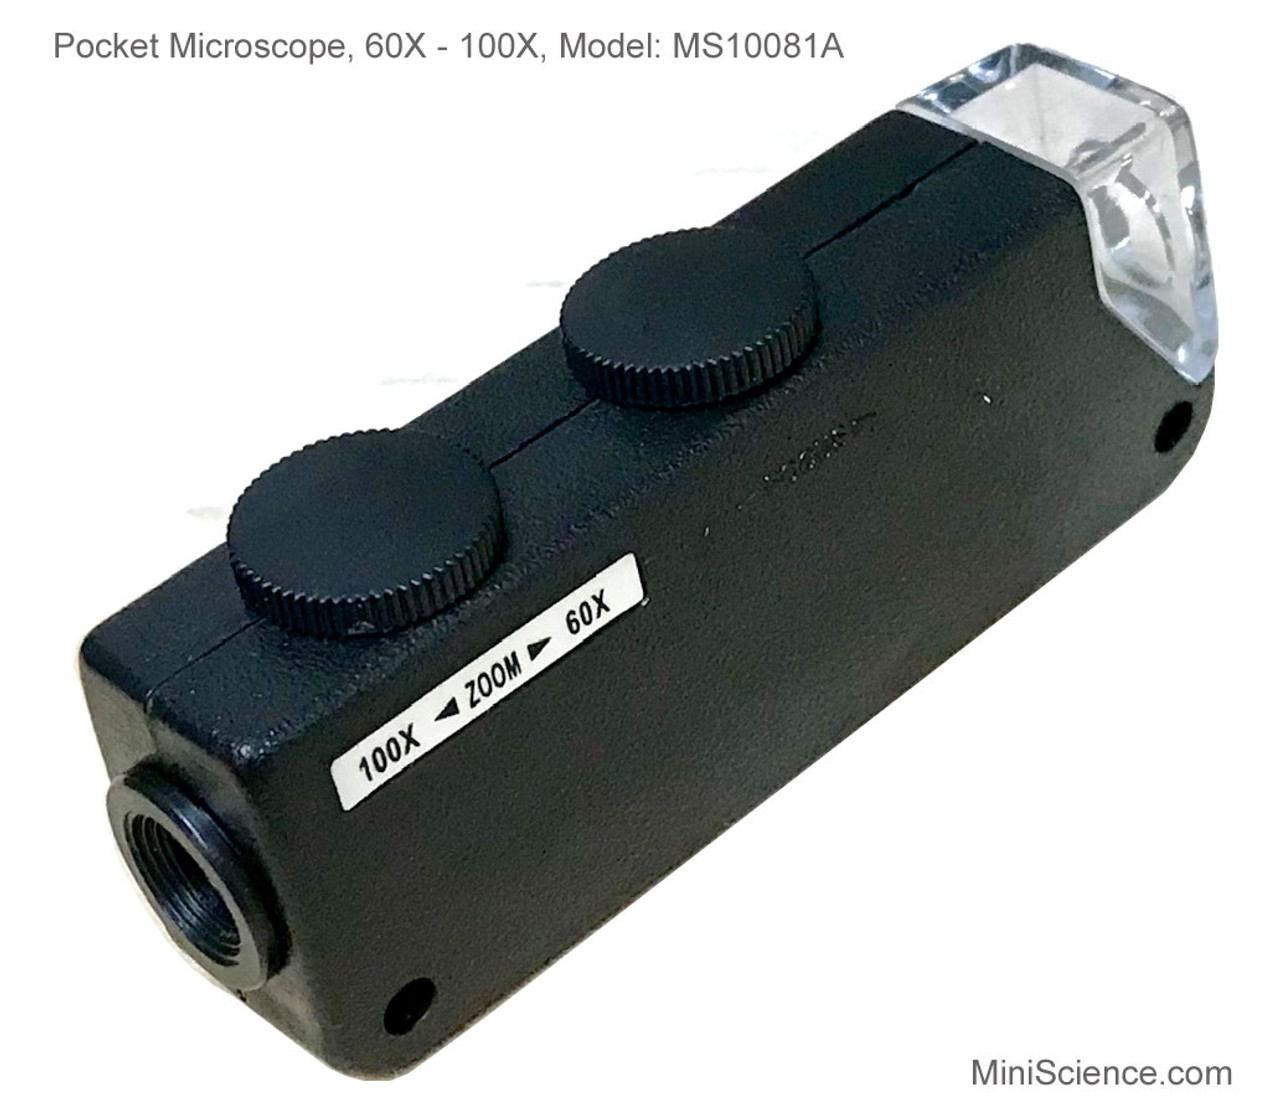 Pocket Microscope Zoom 60X - 100X with white LED light has one knob to adjust magnification and another knob to focus.